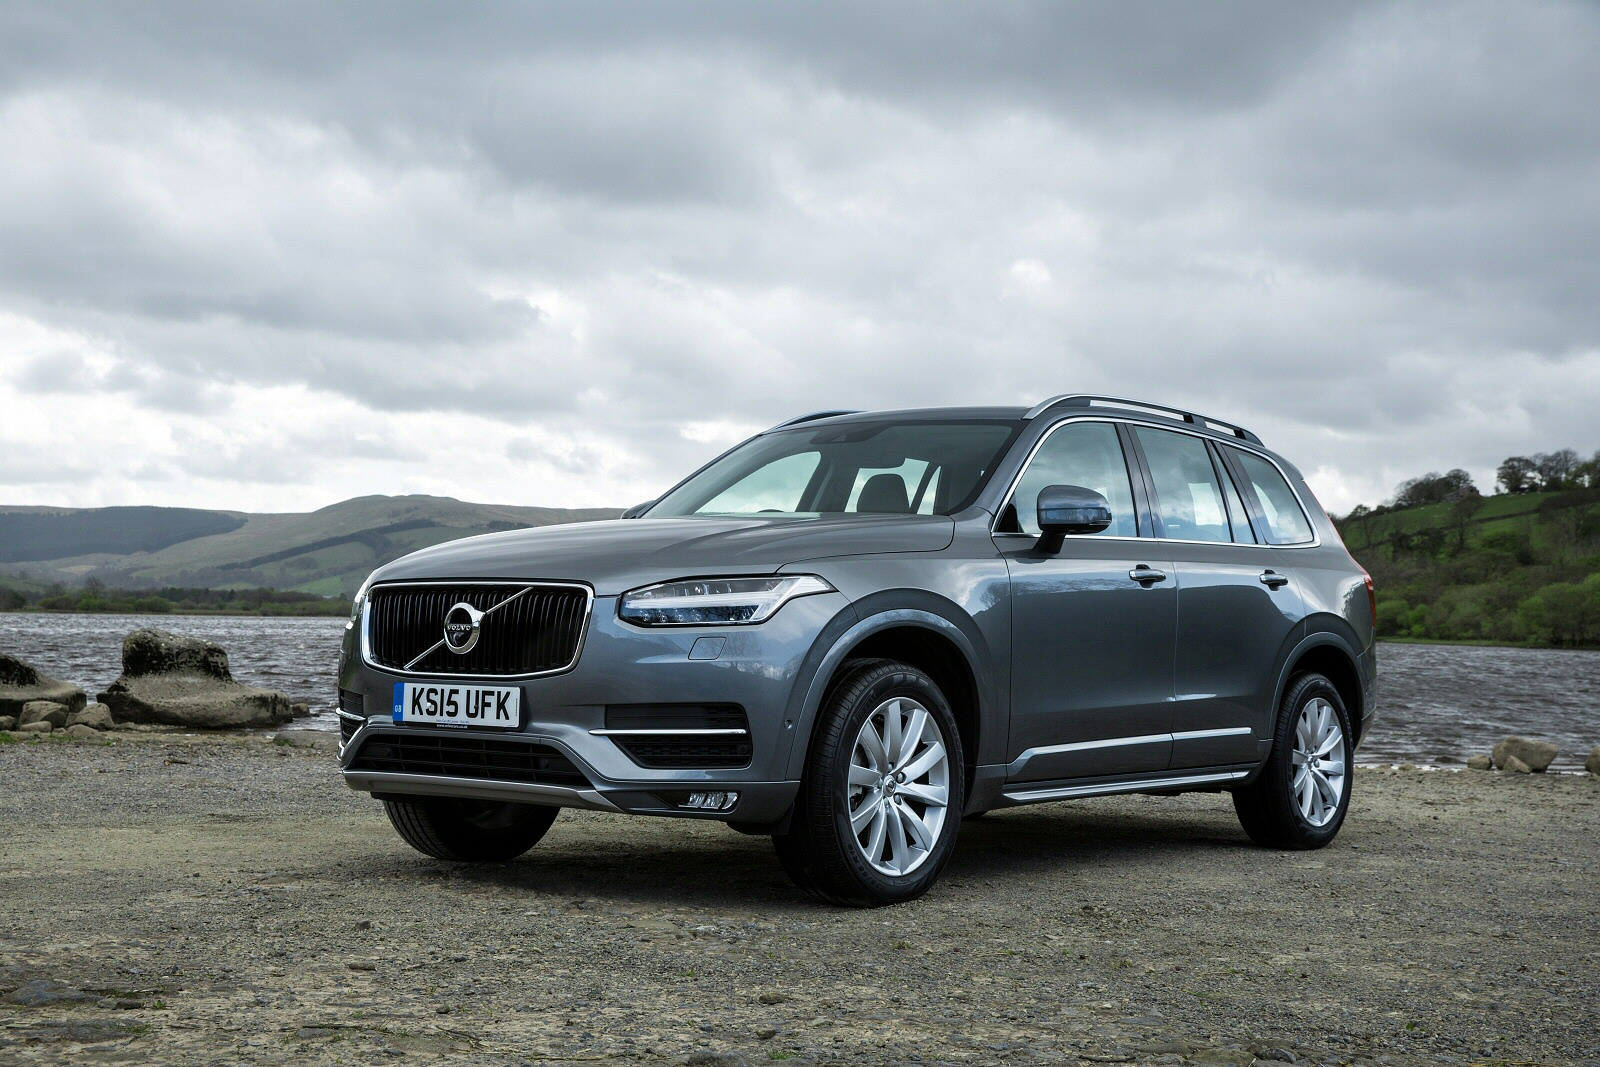 new volvo xc90 2 0 t8 hybrid momentum 5dr geartronic estate for sale bristol street. Black Bedroom Furniture Sets. Home Design Ideas